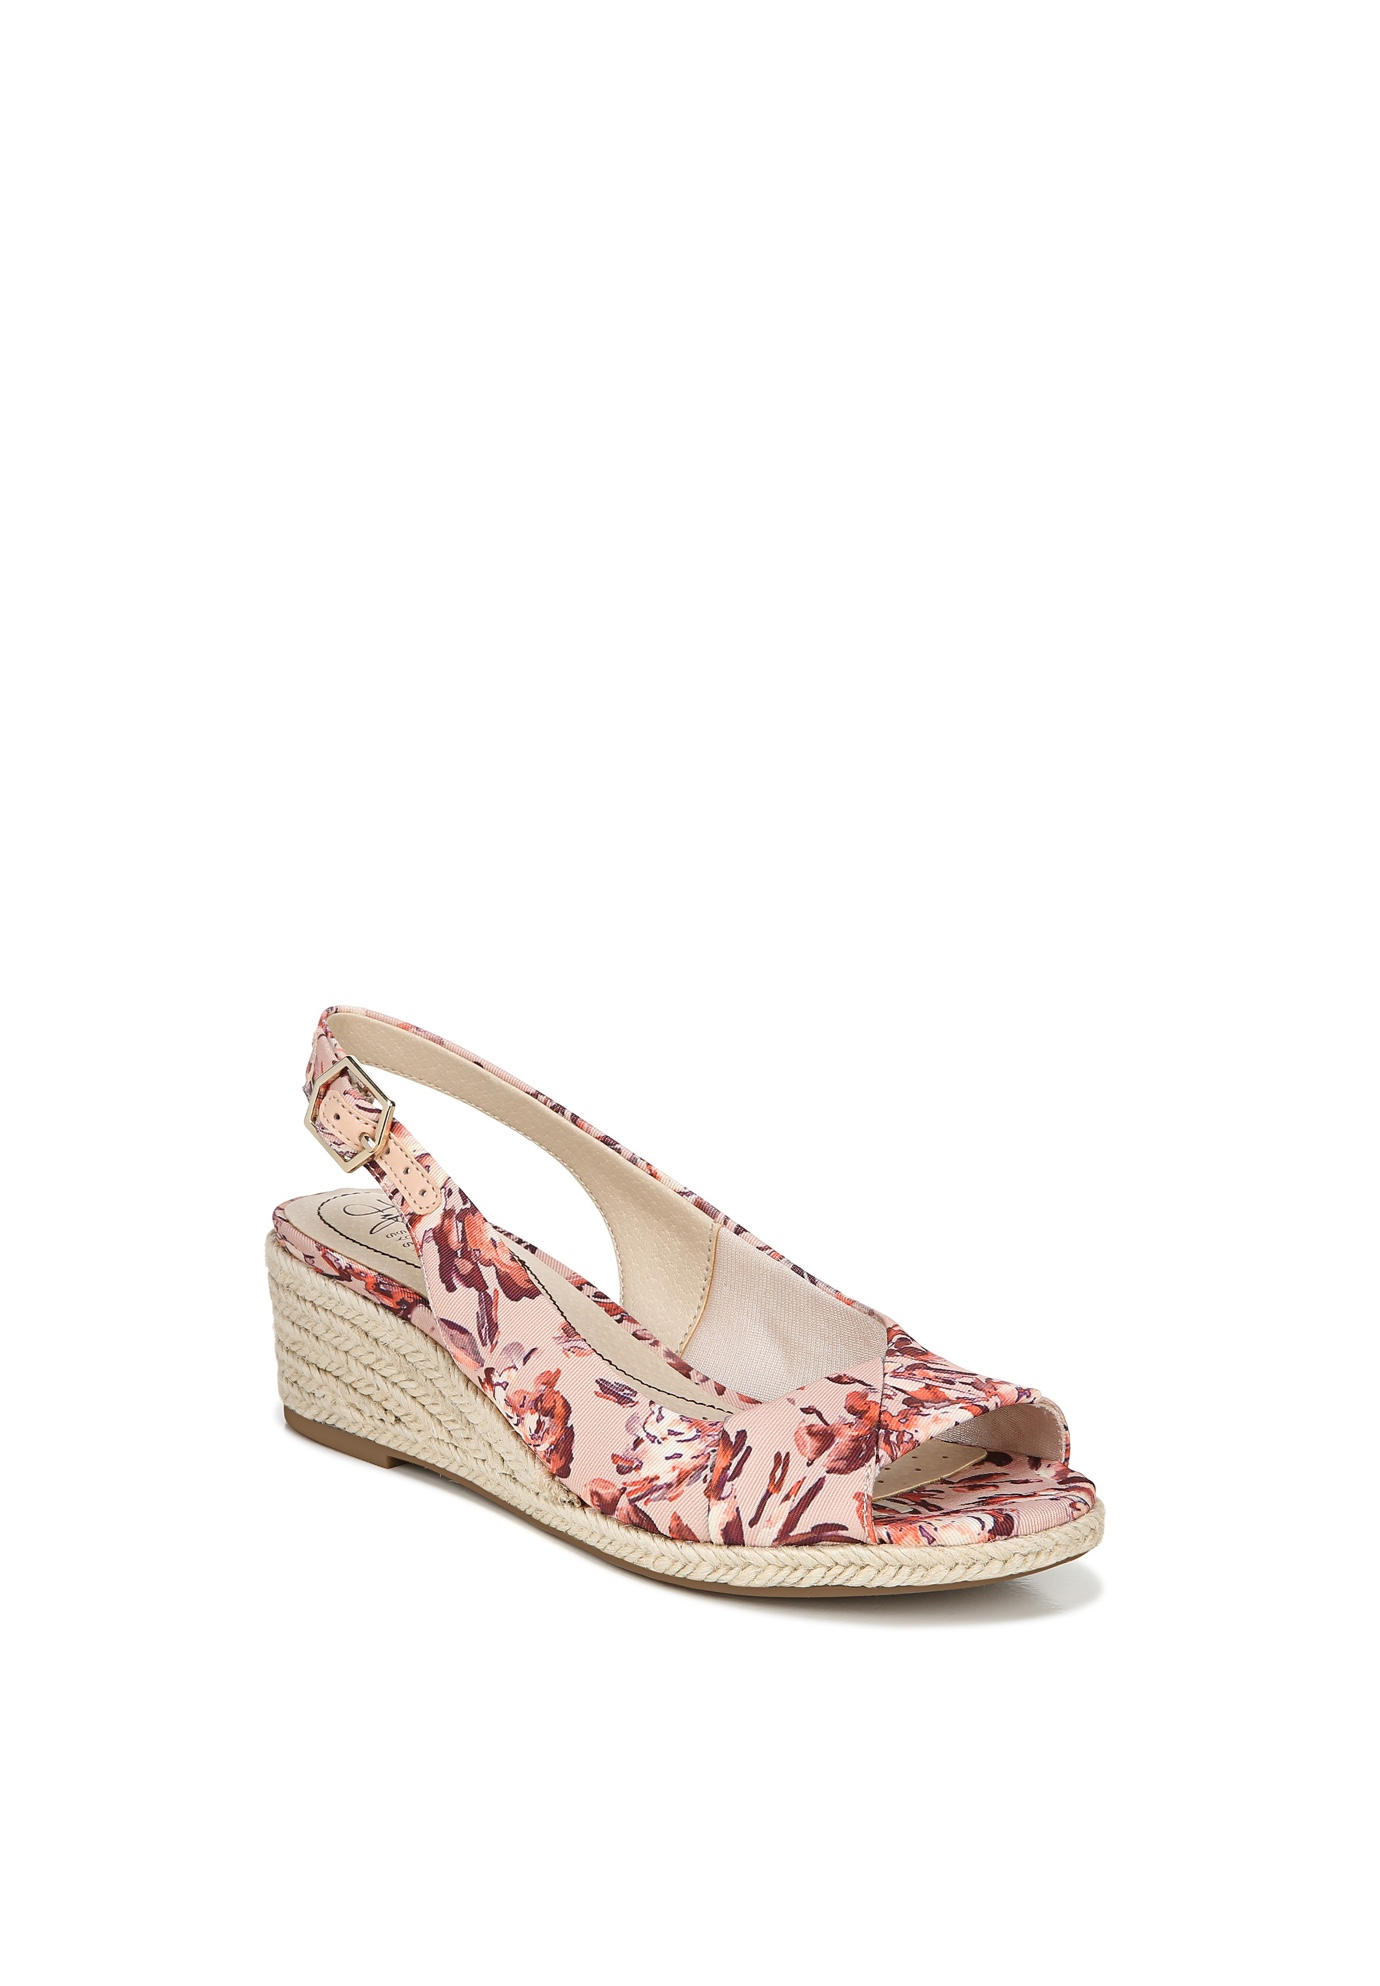 Socialite Wedge Sandal ,